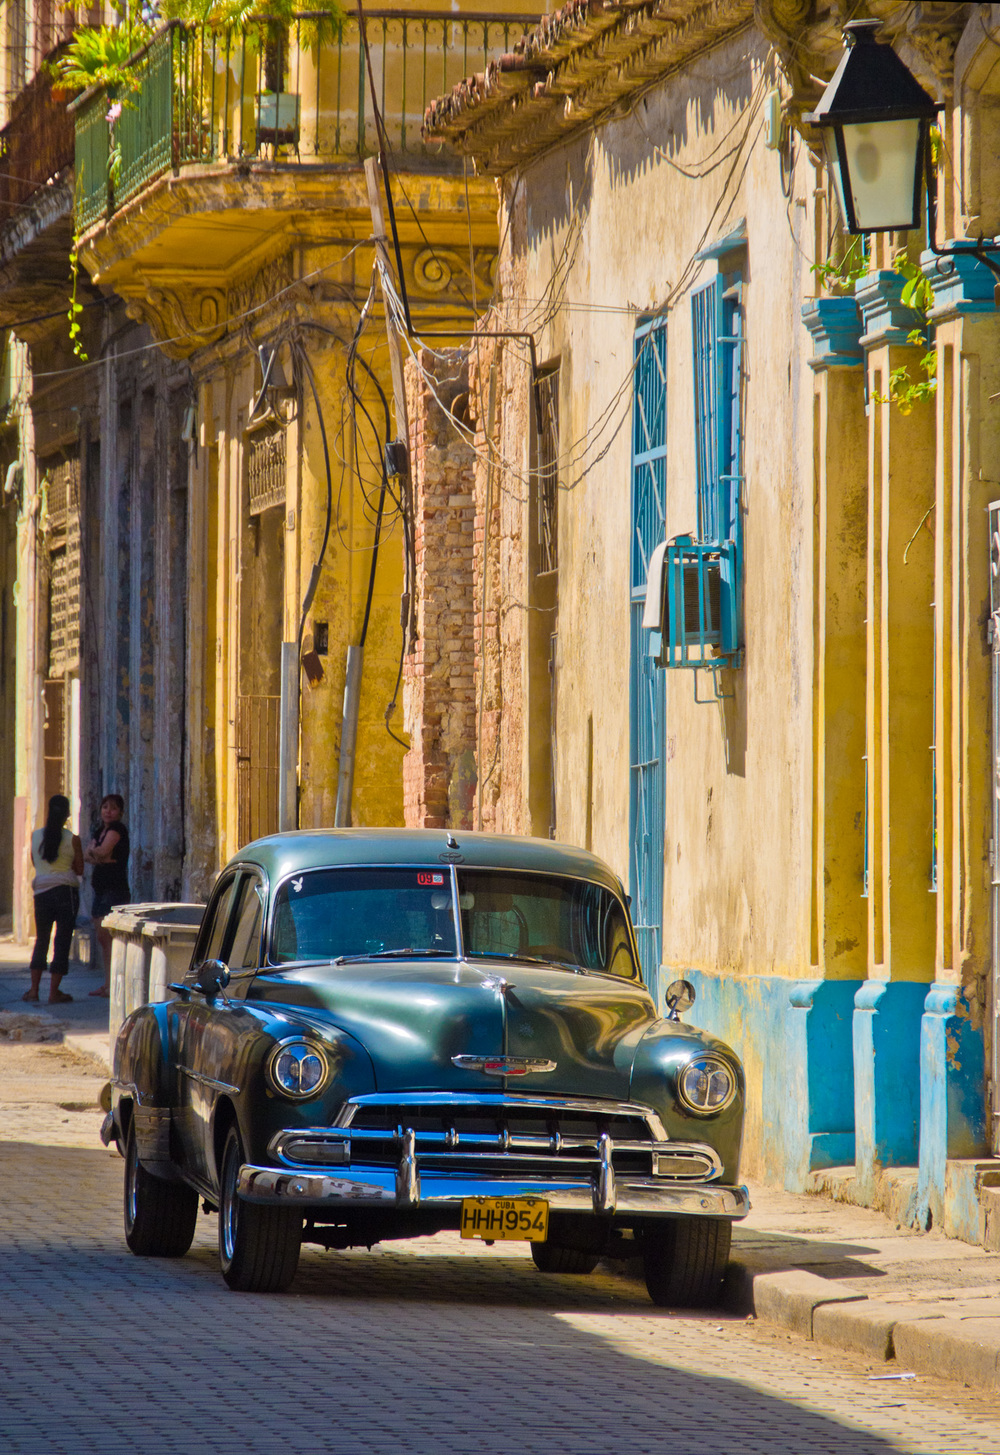 Bill_Barnett_Old Car in Havana.jpg